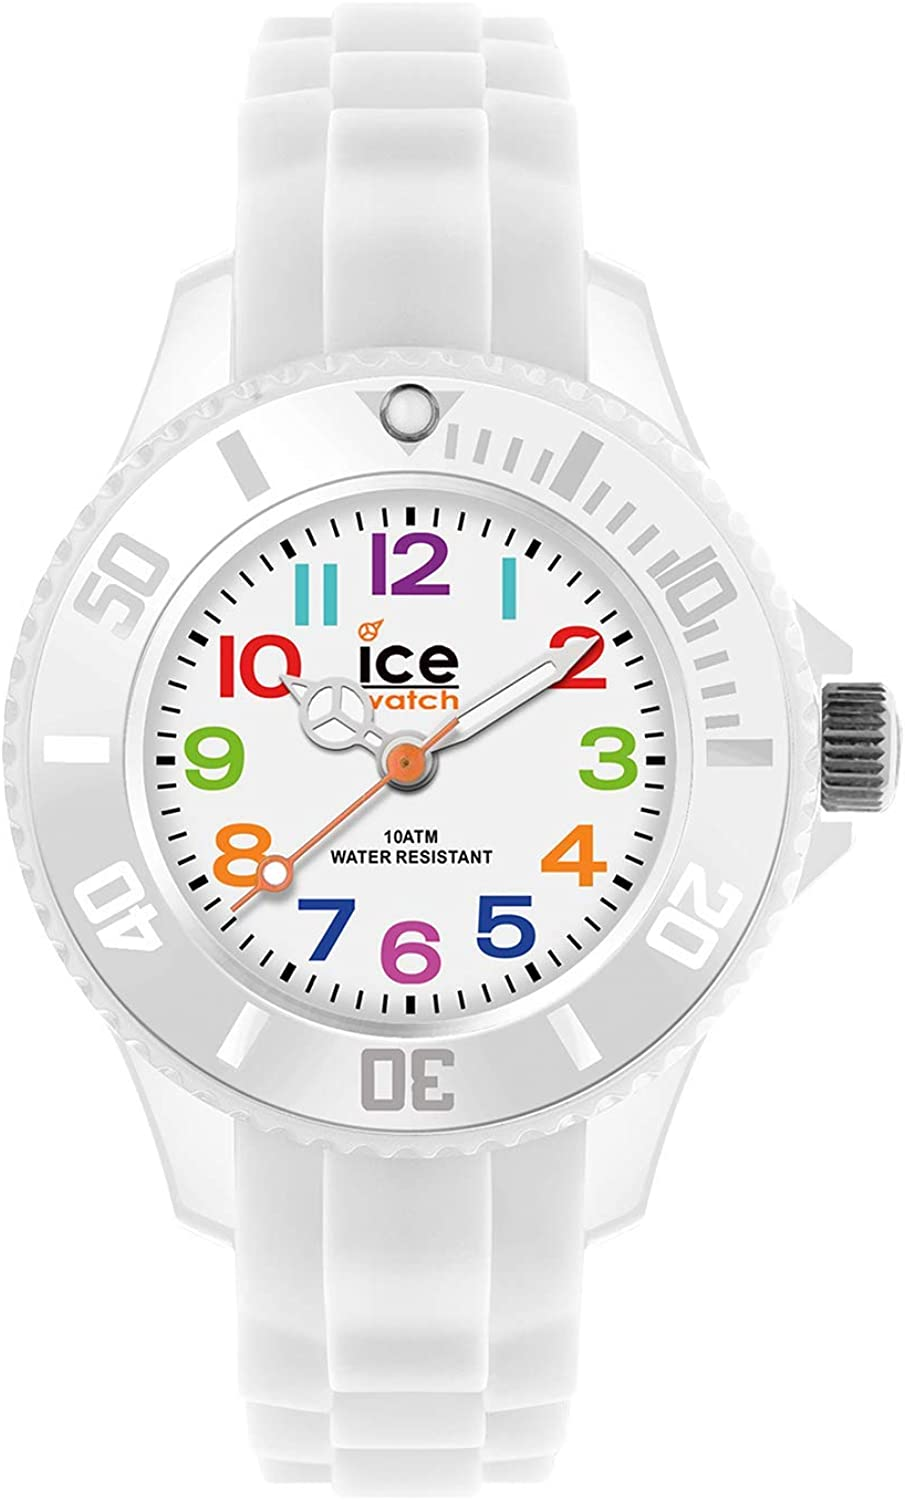 Ice-Watch - ICE mini White - Reloj bianco para Niño (Unisex) con Correa de silicona - 000744 (Extra small)